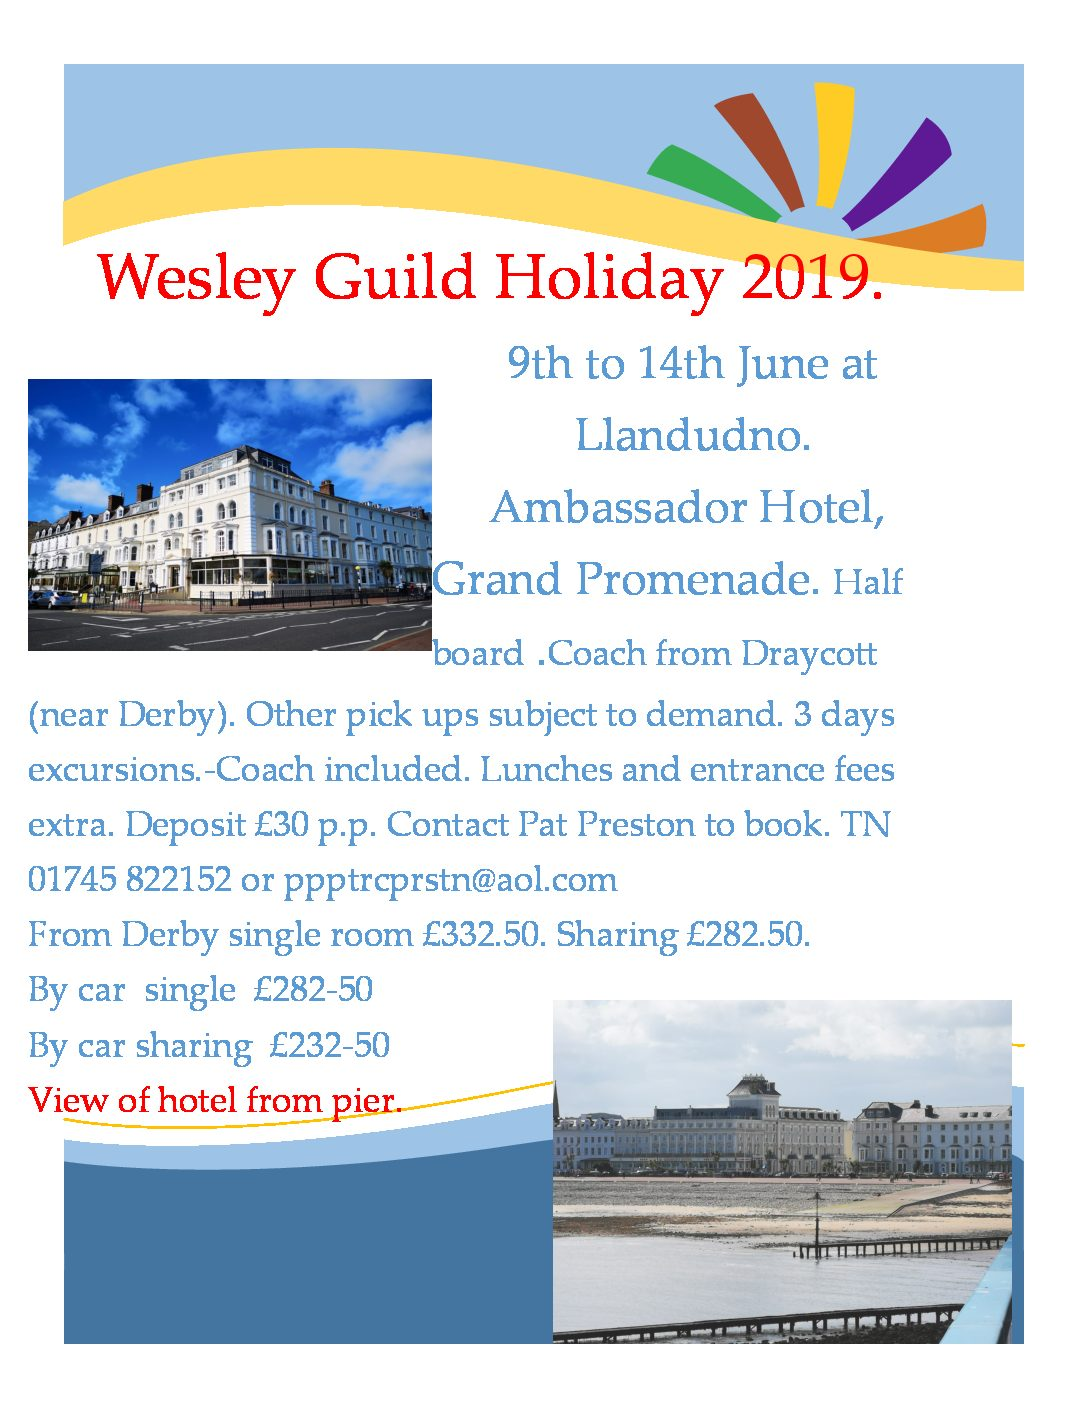 Wesley Guild Holiday To Llandudno In 2019